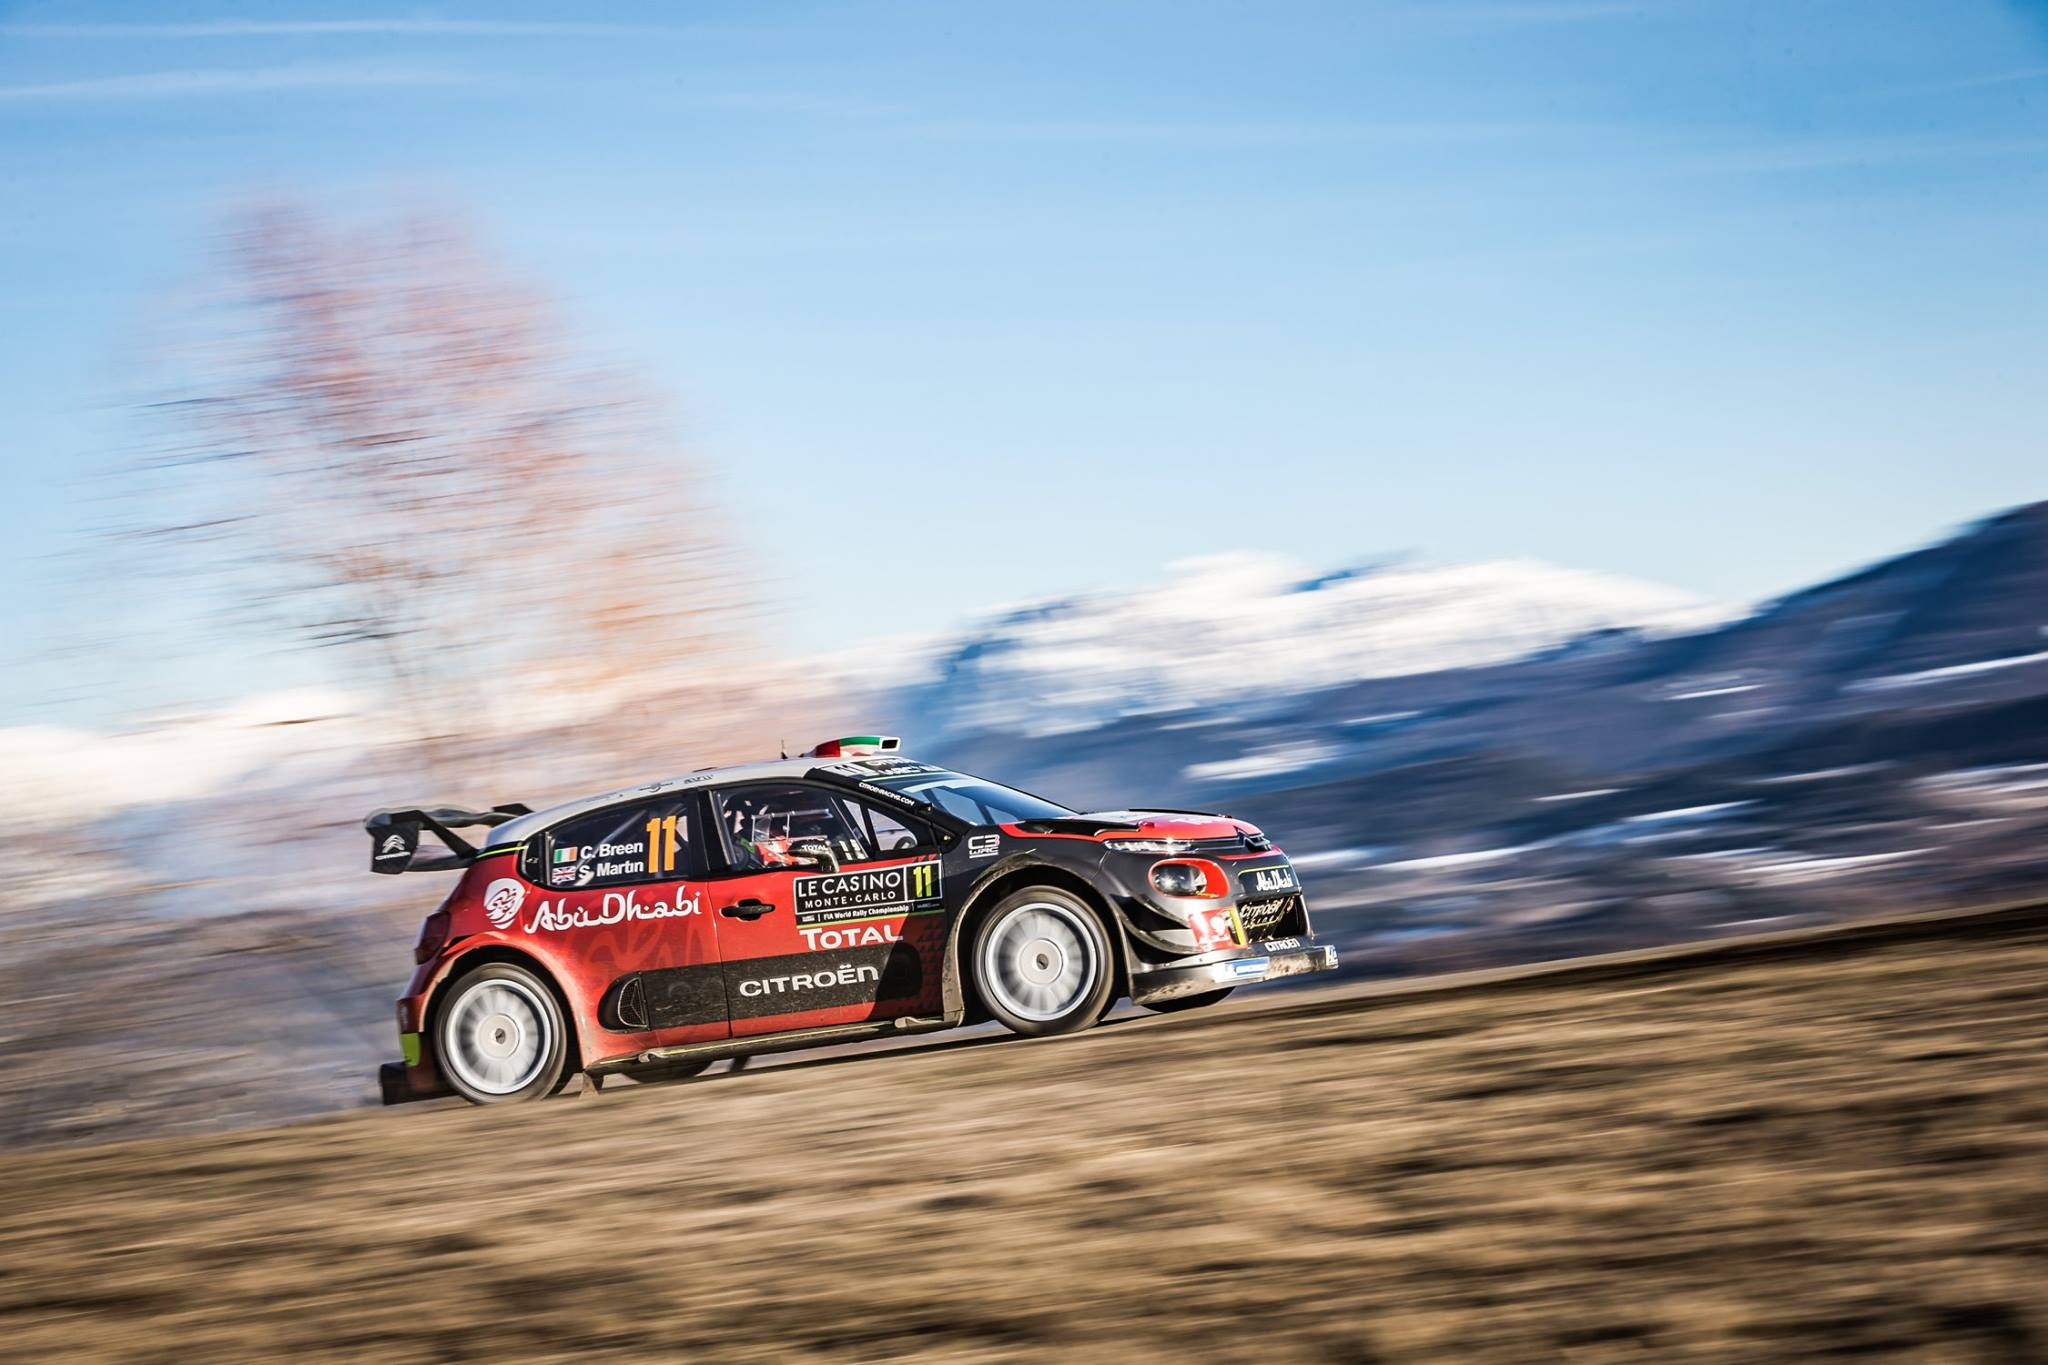 wrc ogier wins season opener at rally monte carlo 2018 gtspirit. Black Bedroom Furniture Sets. Home Design Ideas